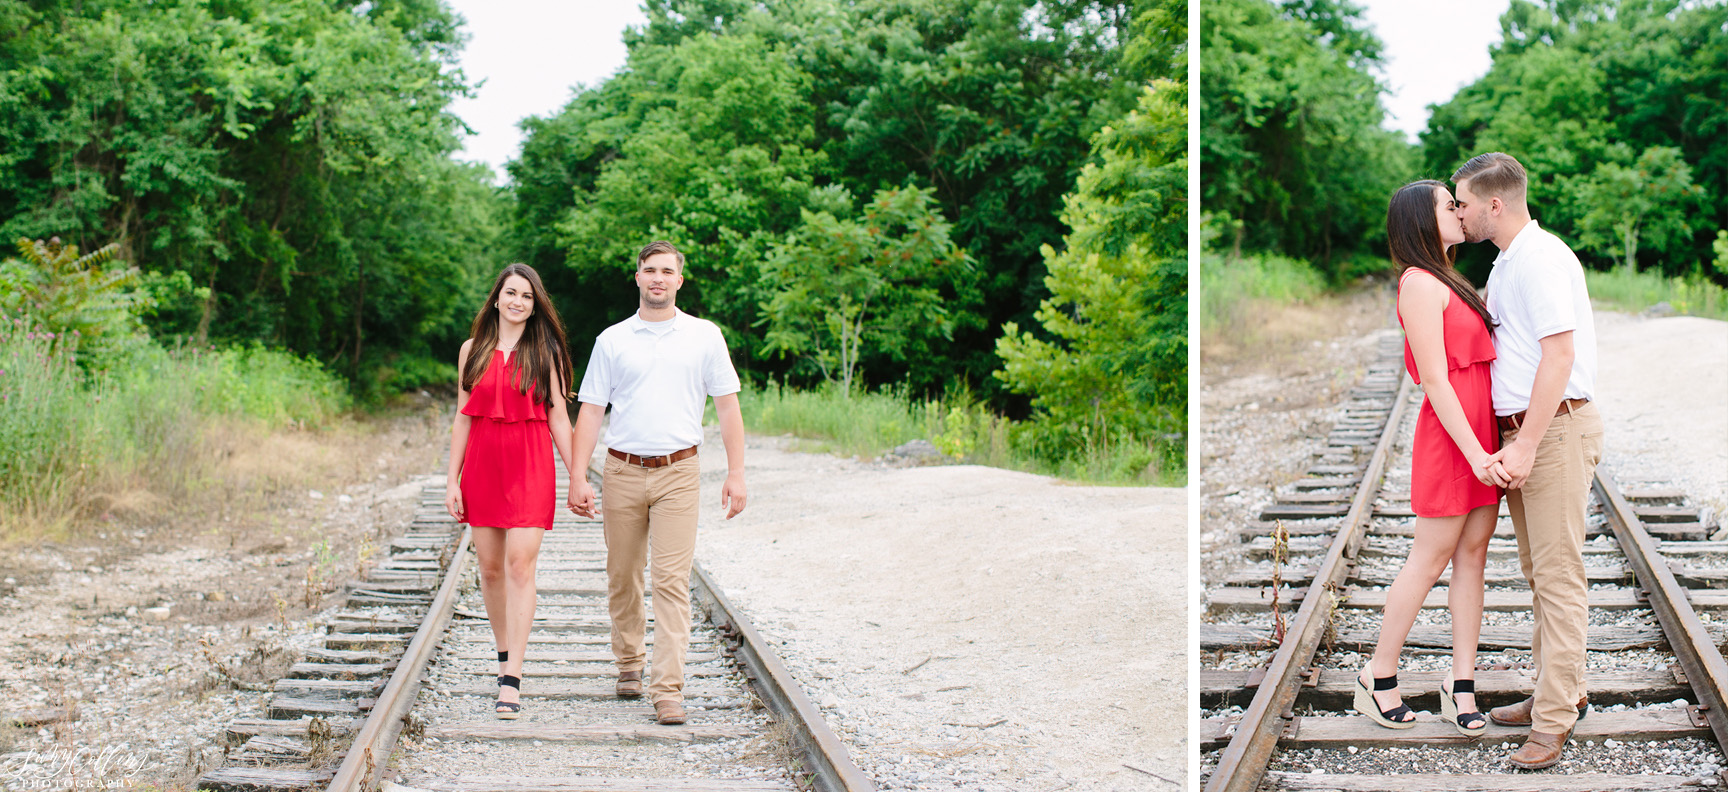 poses, couples, outdoor, meads quarry, Knoxville, Tennessee, engagement, sunset, evening, love, vibrant, colorful, bright, creative, romantic, natural, light and airy, natural light, passion, inspiration, intimate, outfits, fountain, woods, pond, park, railroad